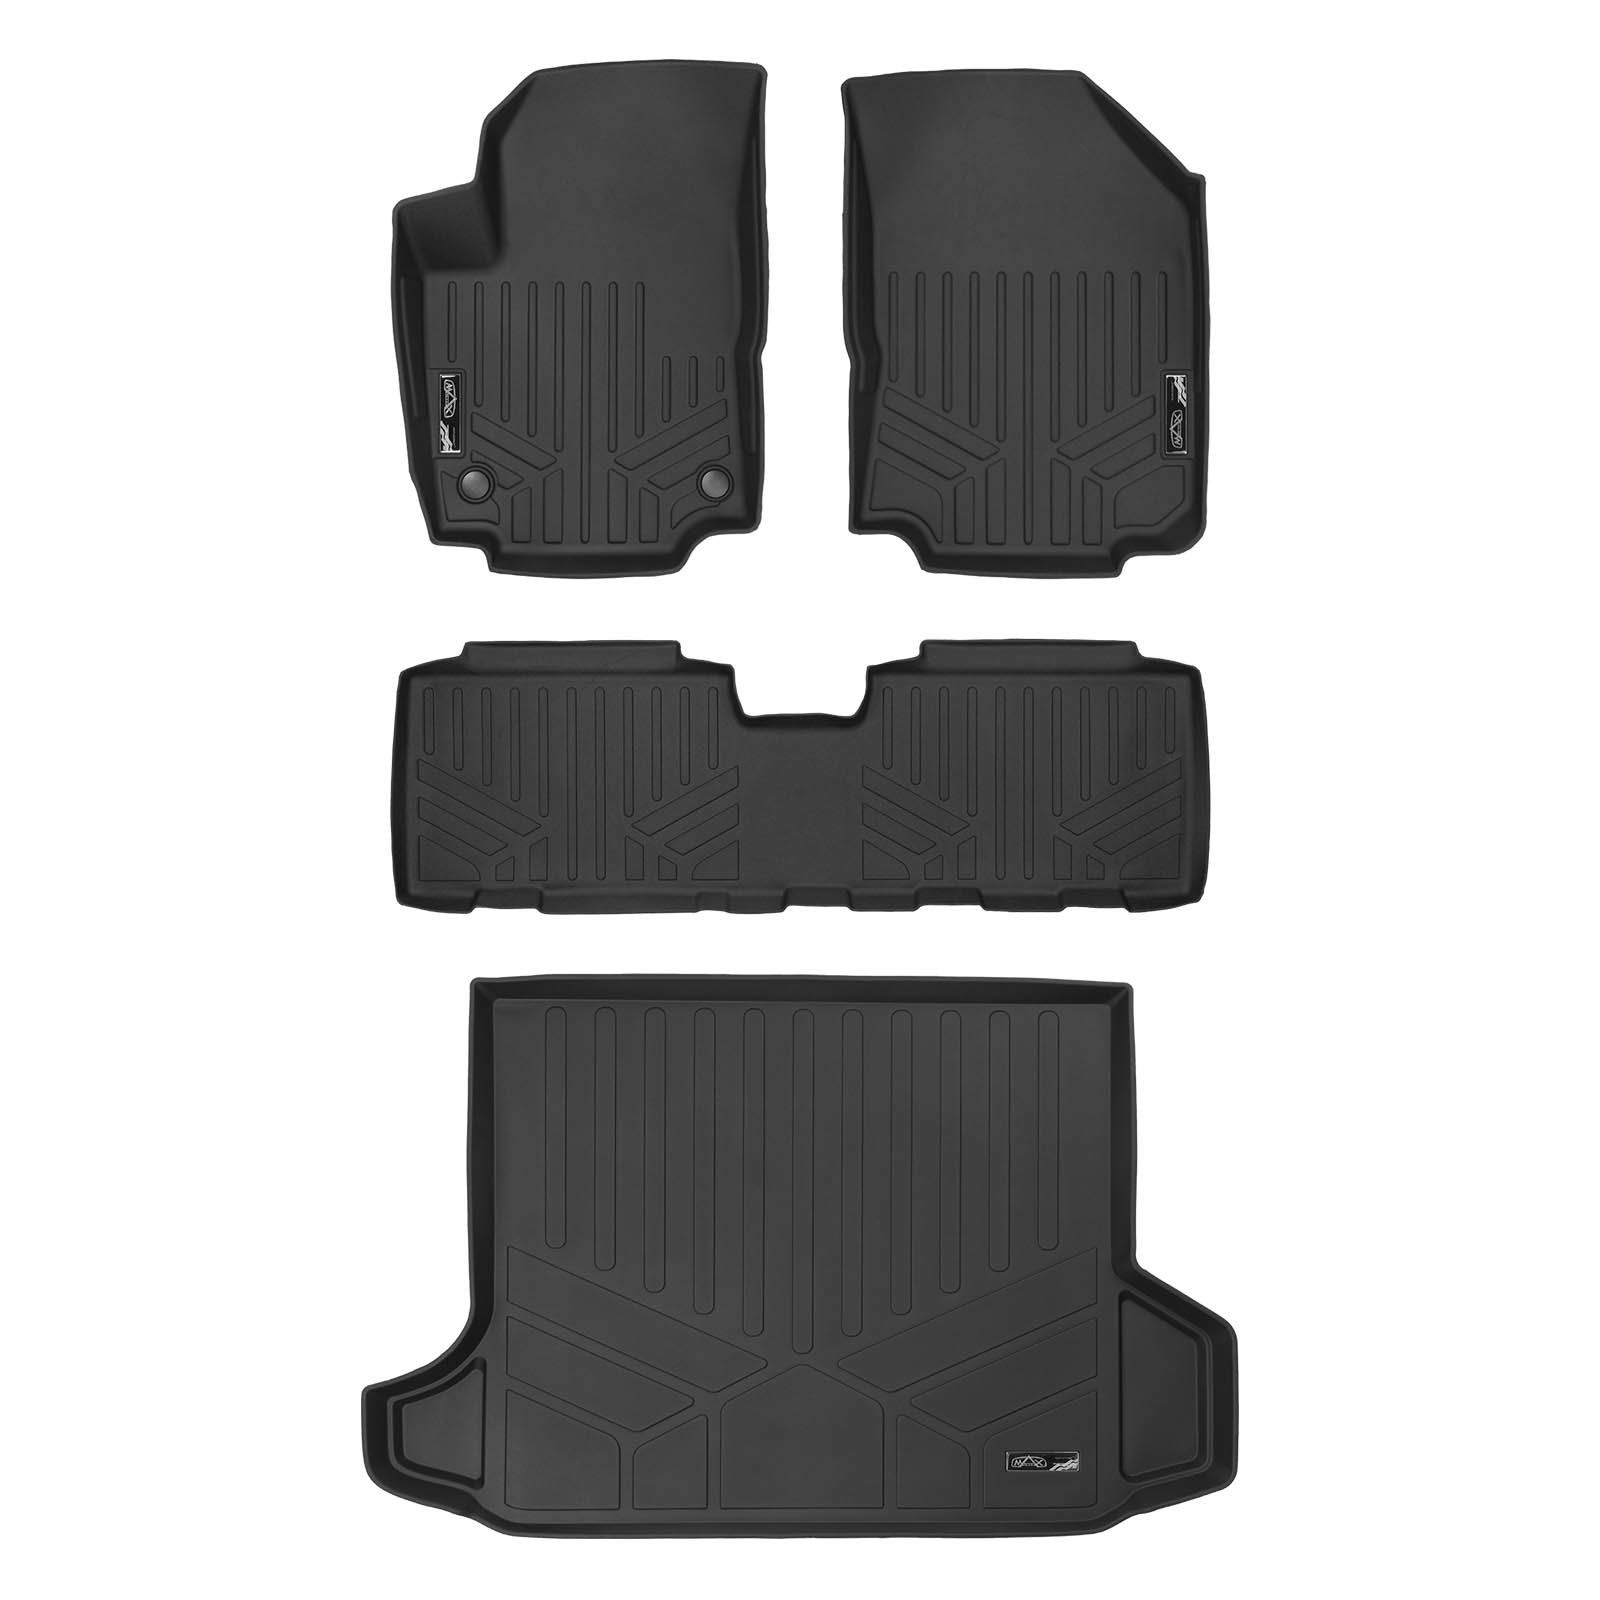 Smartliner Custom Fit Floor Mats 2 Rows And Cargo Liner Black For 2018 2019 Chevrolet Equinox Read More At Cargo Liner Chevrolet Equinox Automotive Interior